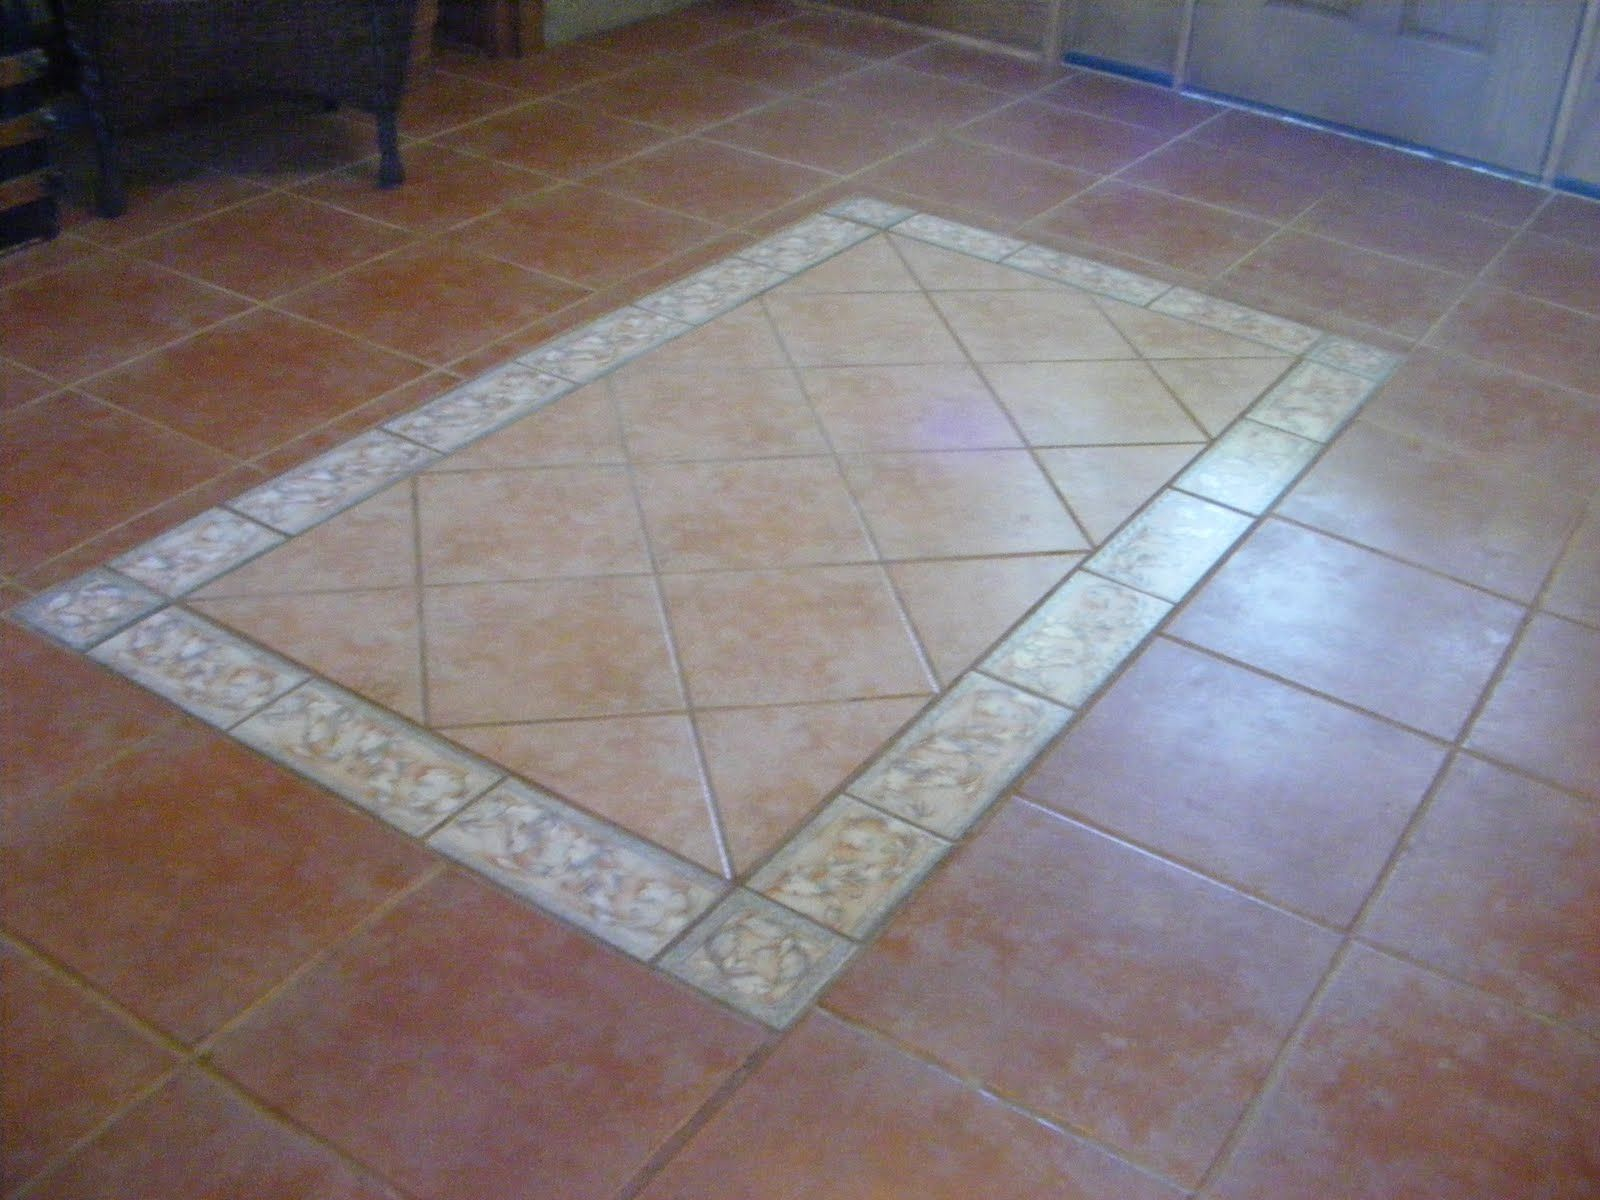 Foyer Tile Design Ideas flooring appealing tile marble foyer flooring design ideas foyer cabinet design Floor Tile Design Patterns Of New Inspiration For New